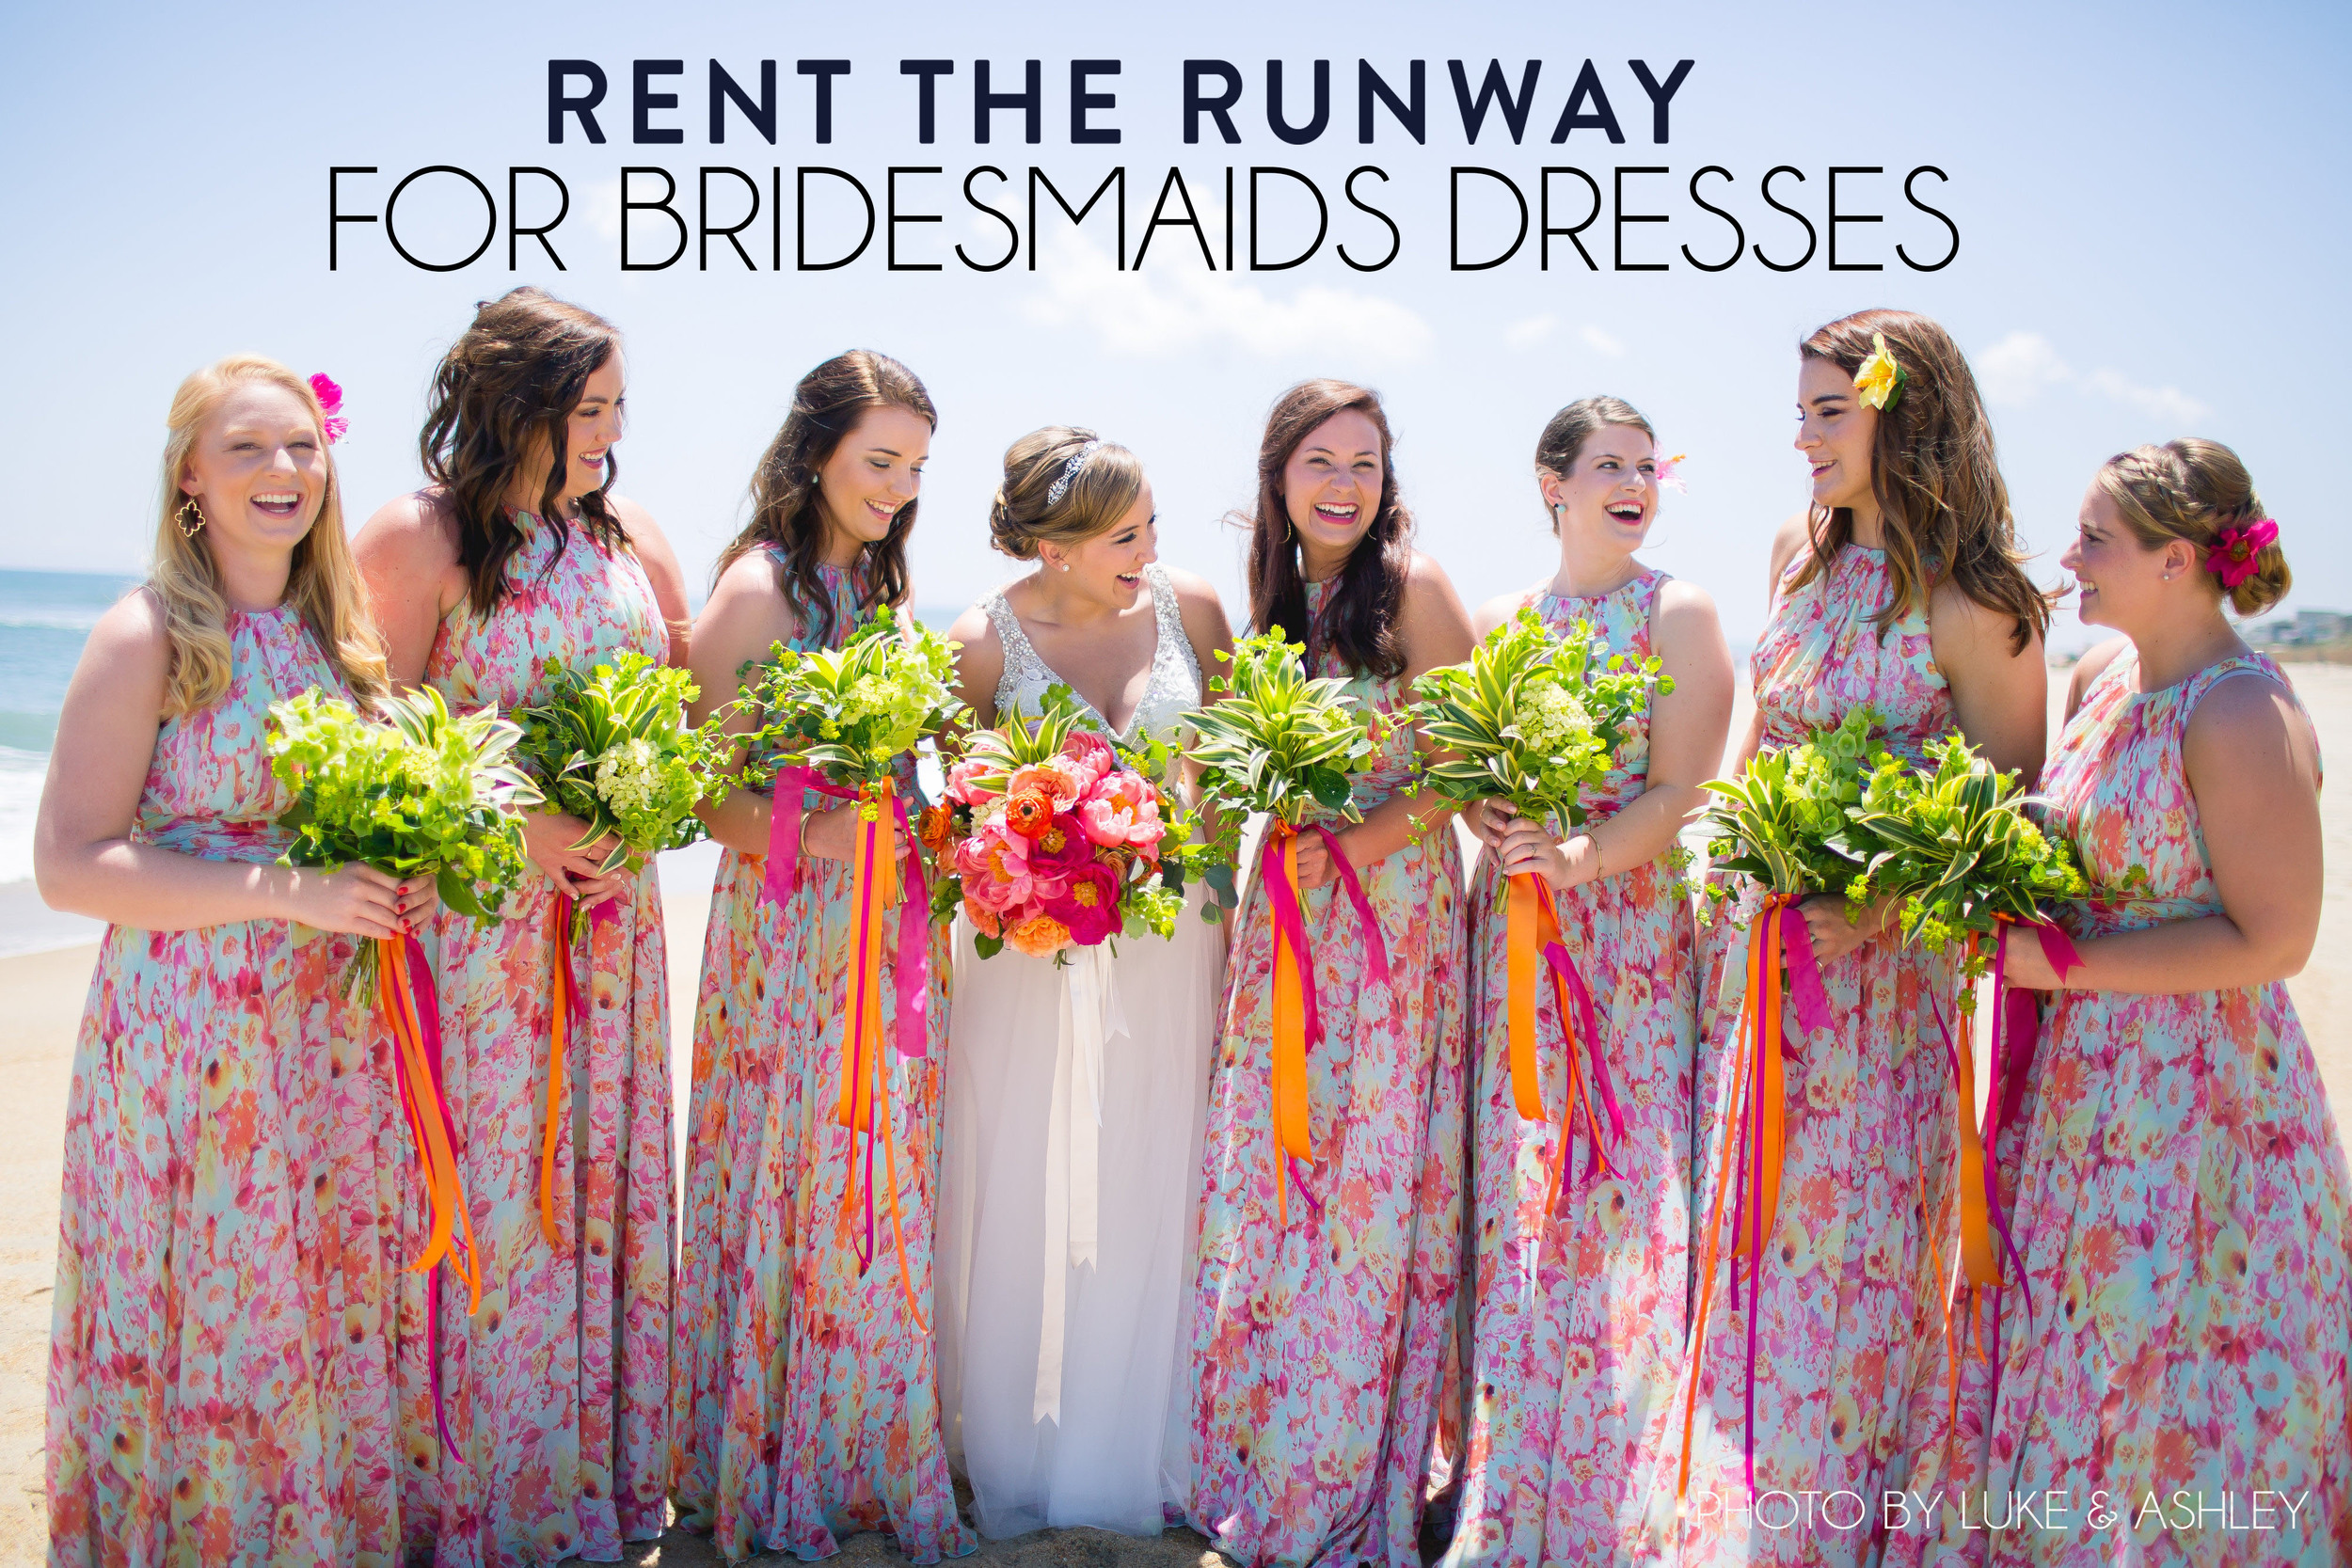 Using Rent the Runway for Bridesmaids Dresses